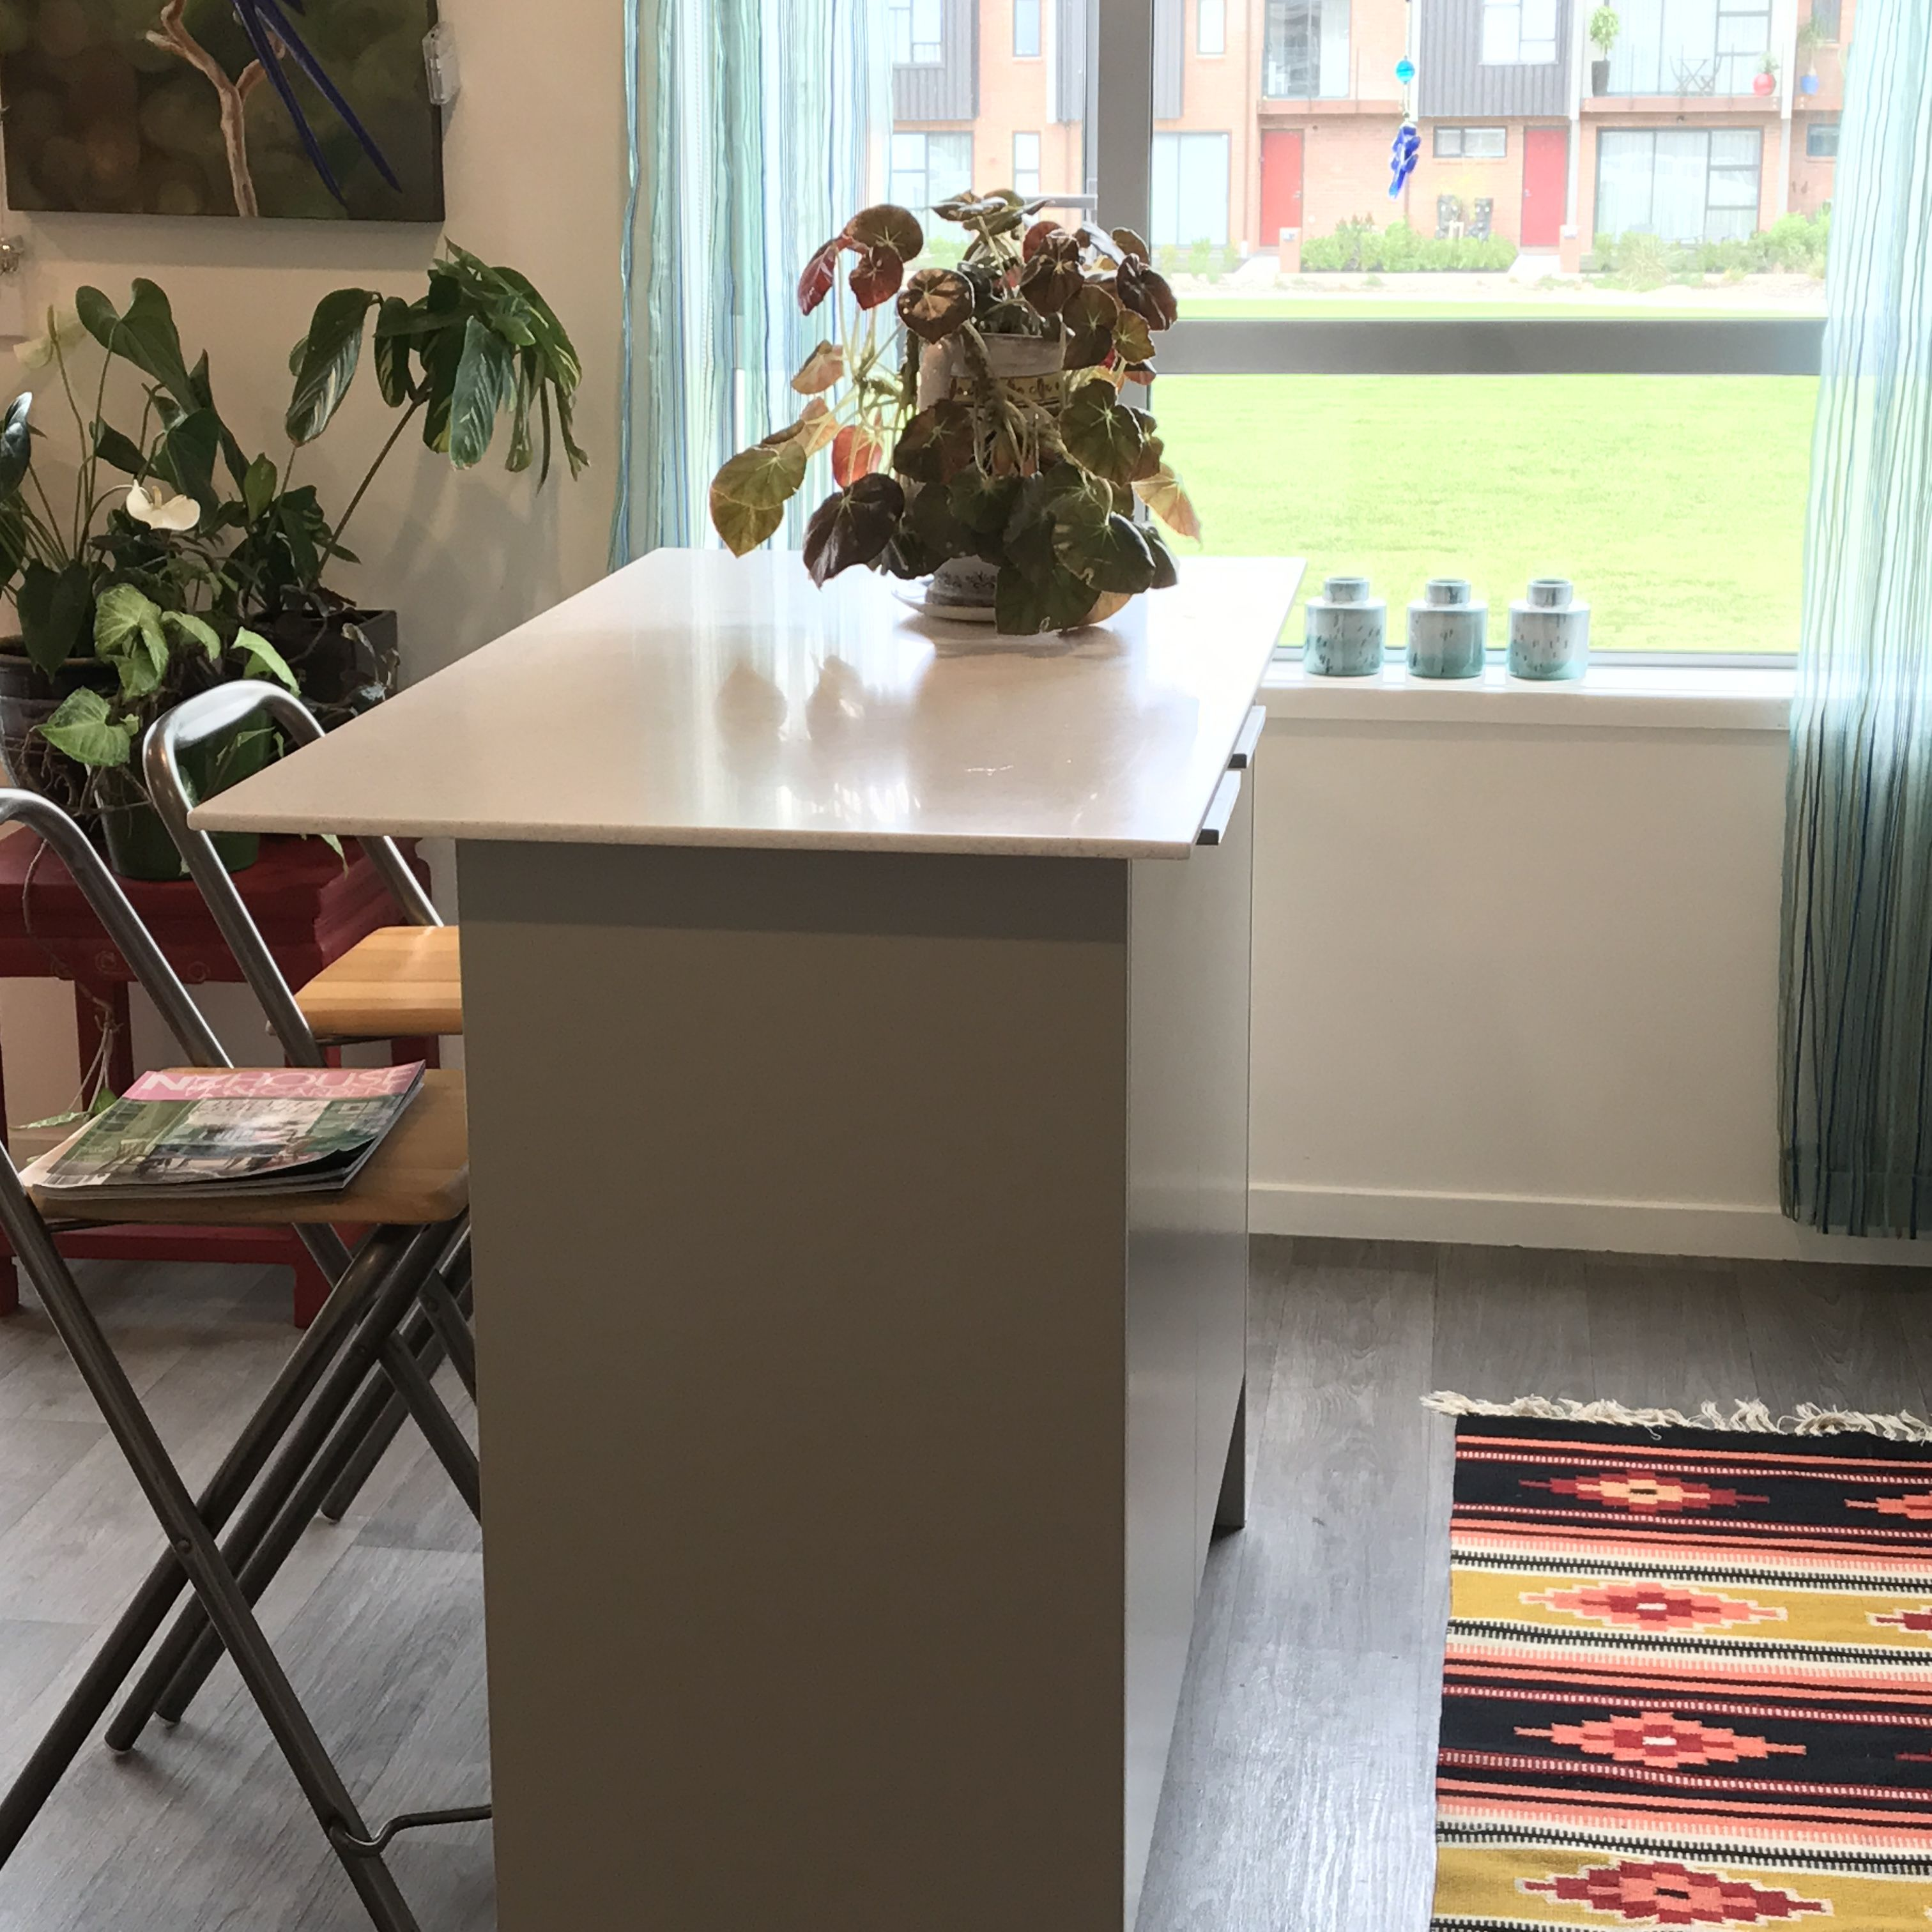 The apartment kitchen with the addition of plants colorful rugof